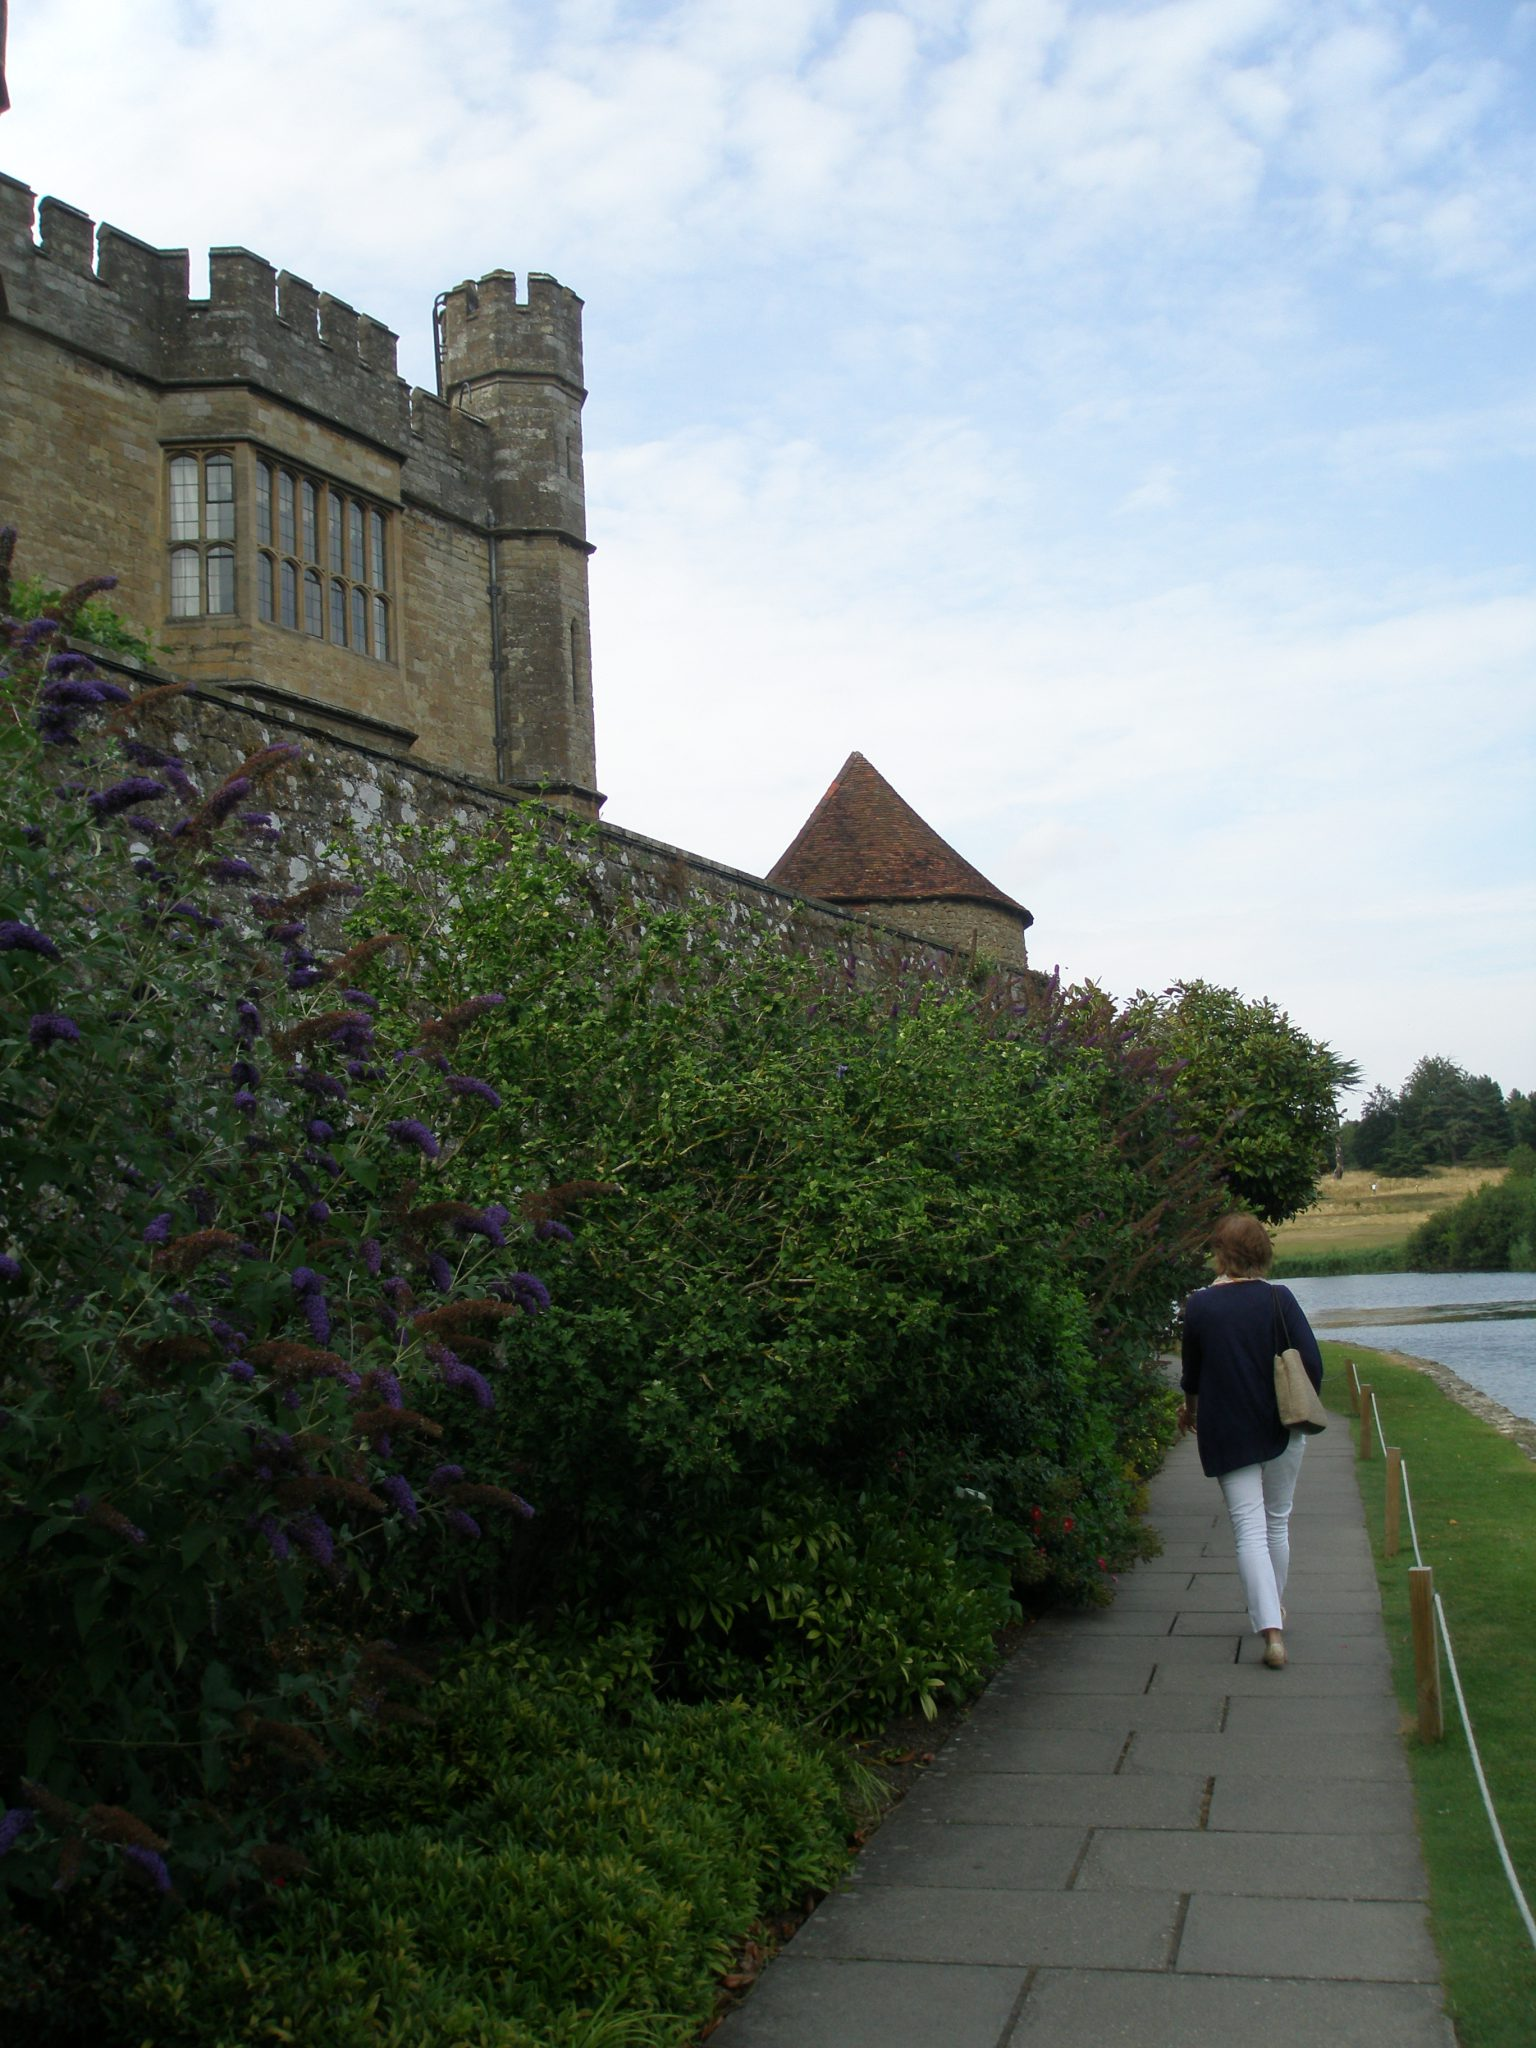 But what I most wanted to see was the oldest part of Leeds Castle, the Gloriette. To get there, Amanda led me along a waterside path.